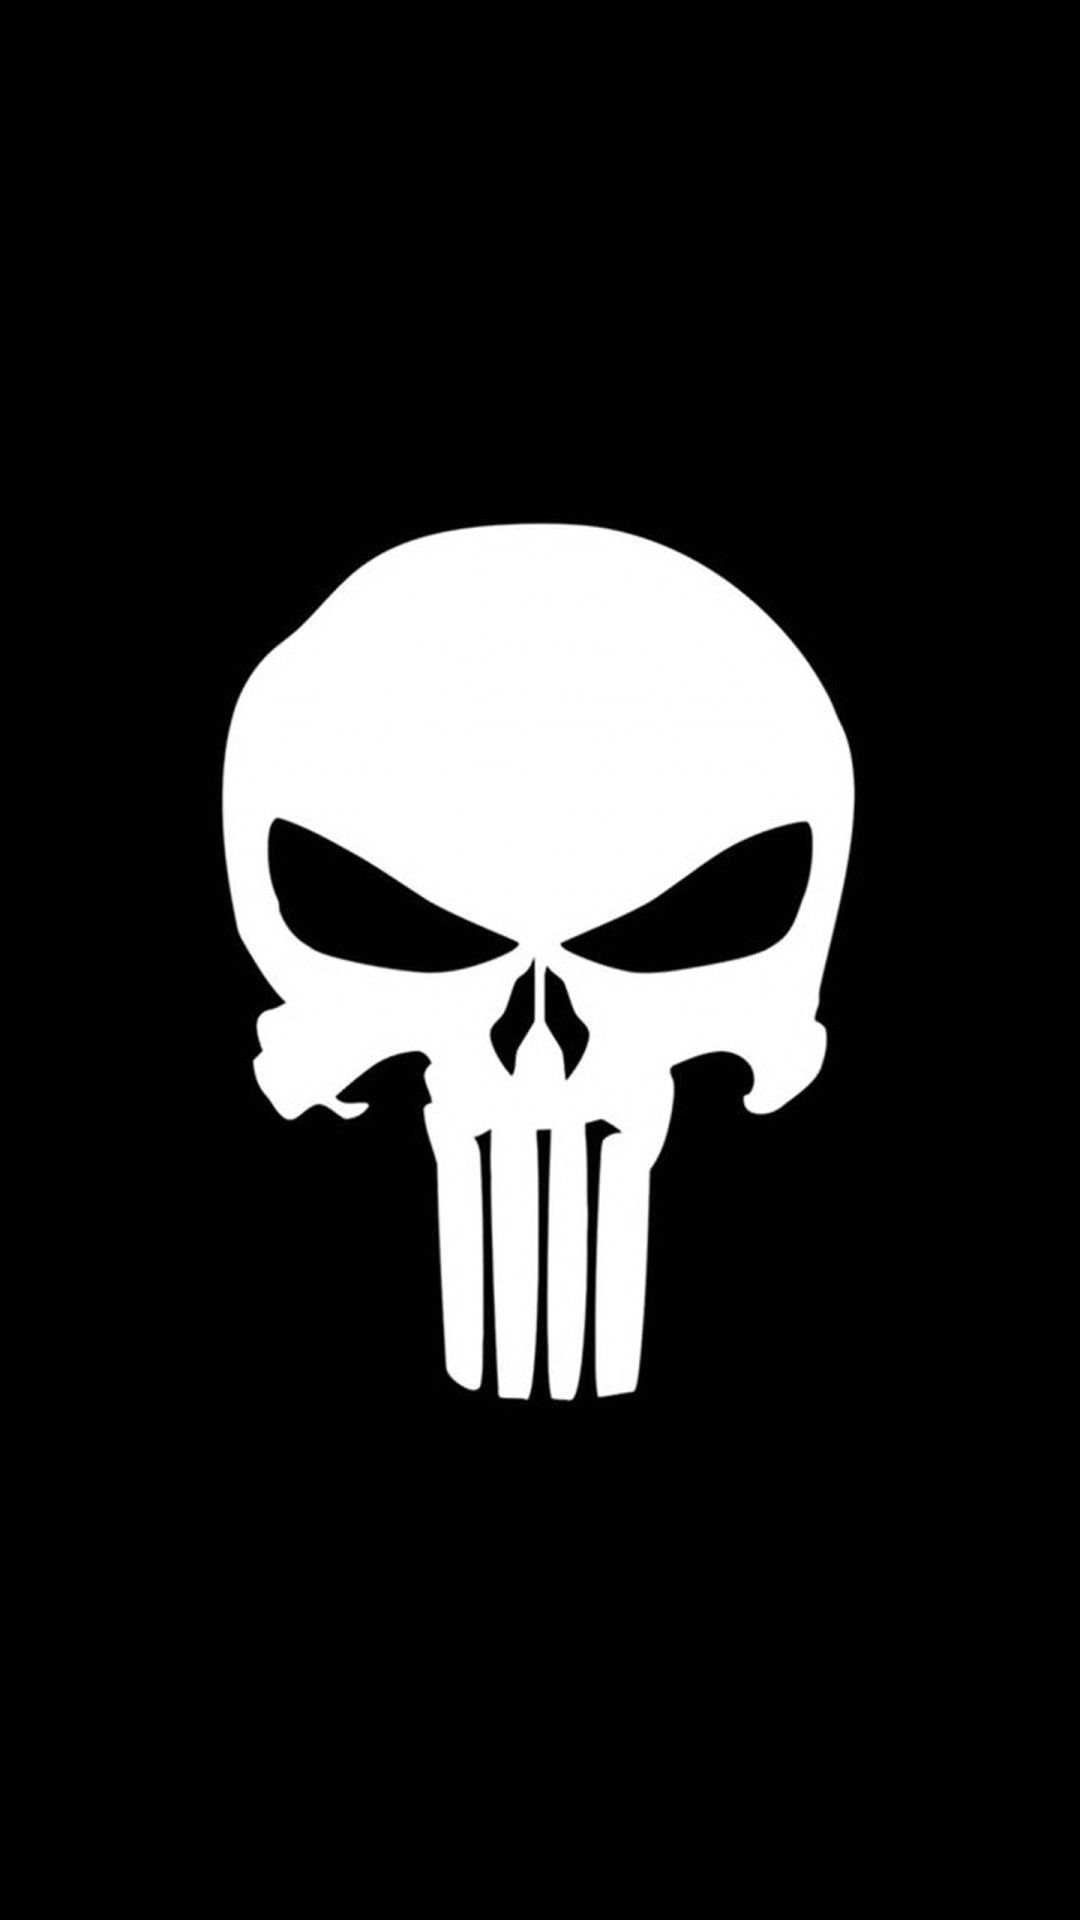 Skull Iphone Wallpapers Top Free Skull Iphone Backgrounds Wallpaperaccess